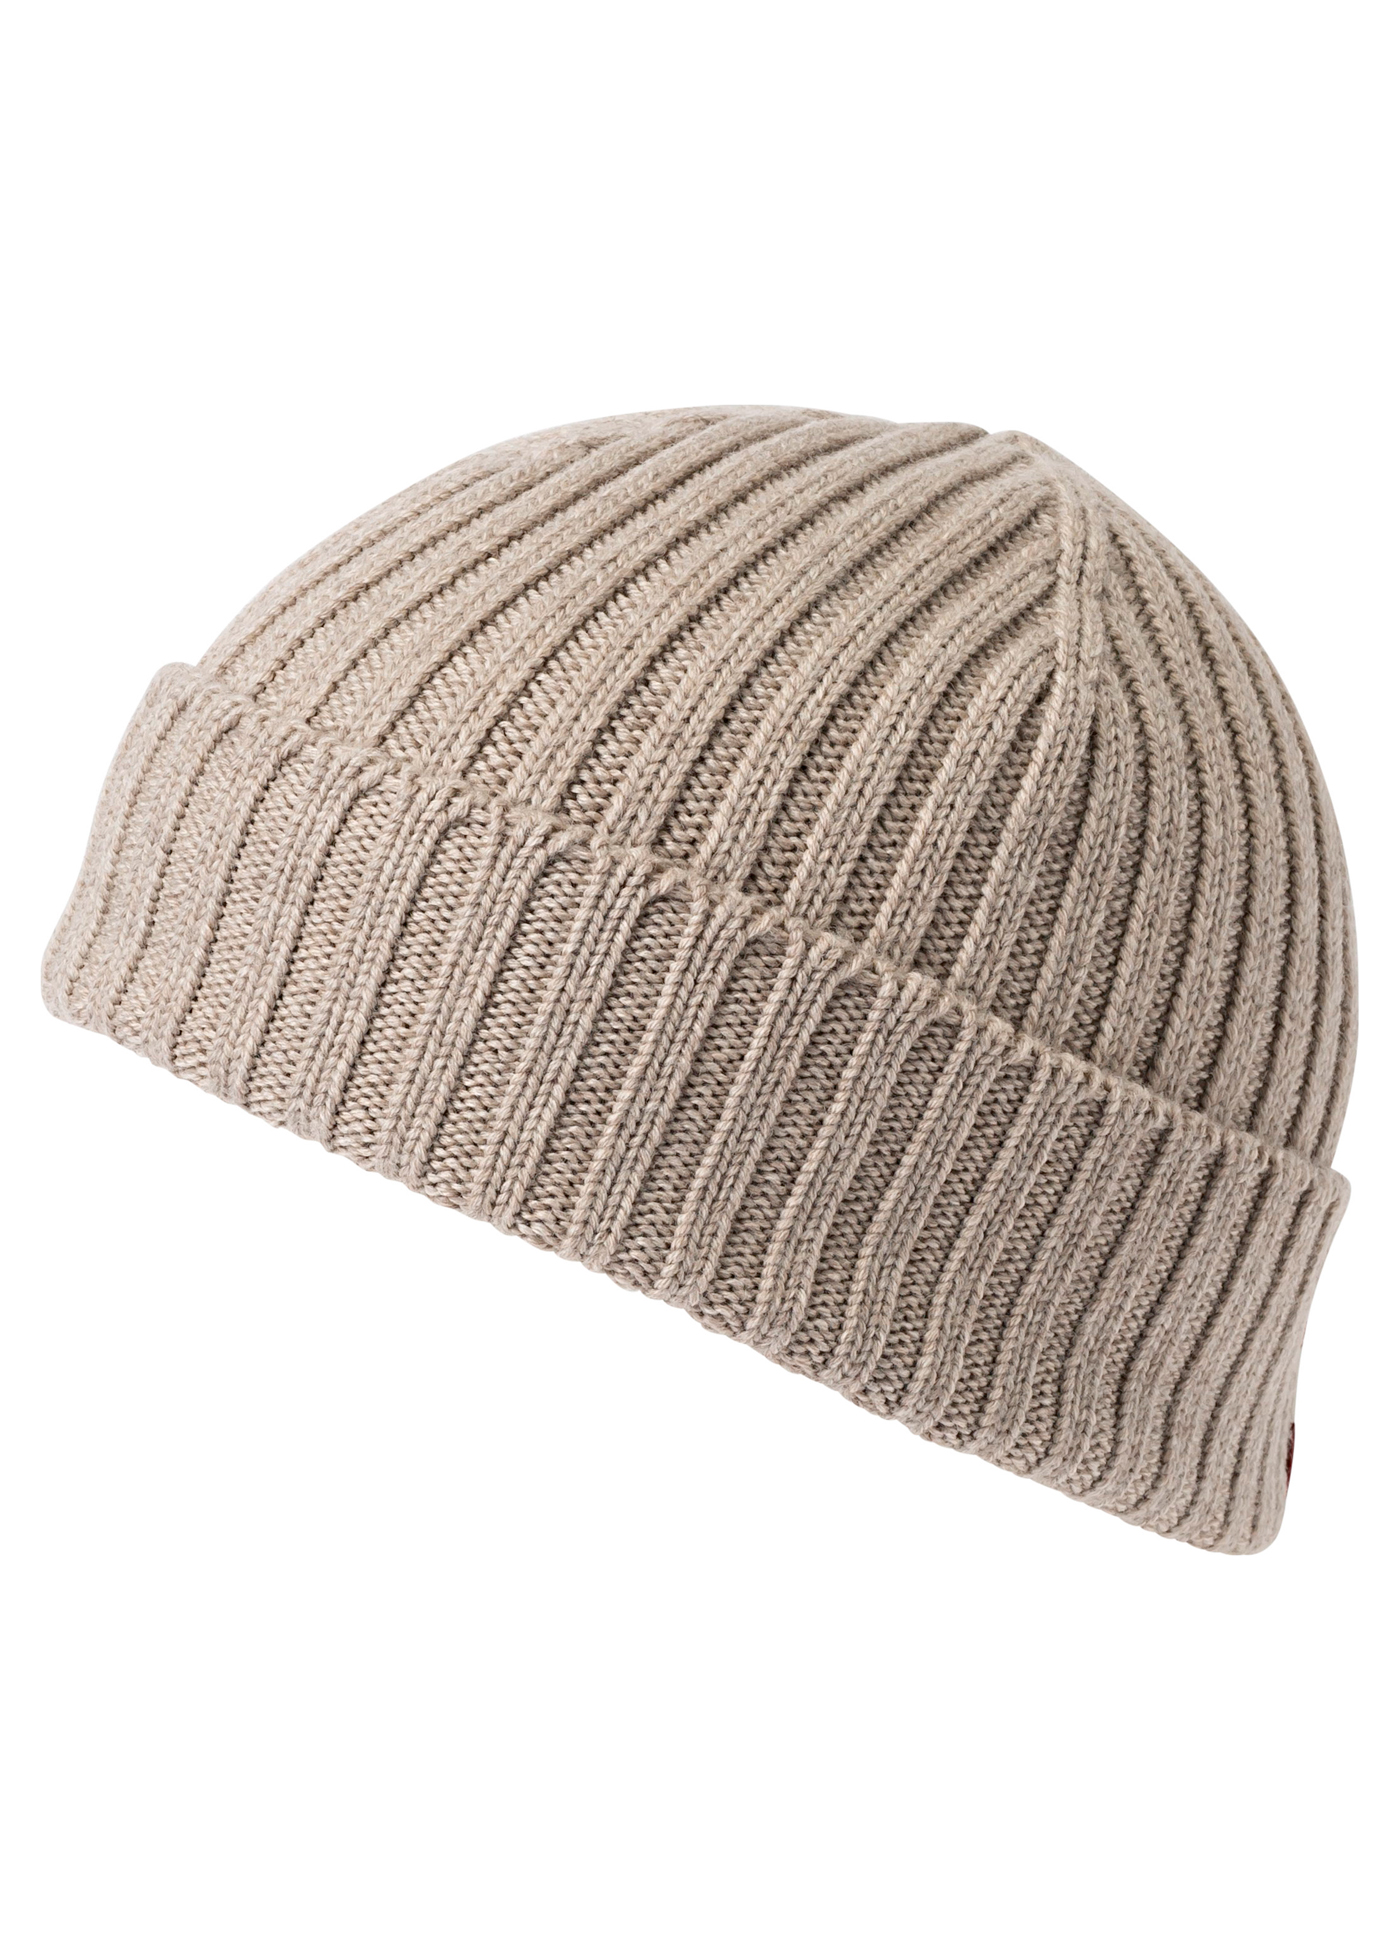 M8AN147K-8S506/130 BEANIE image number 0